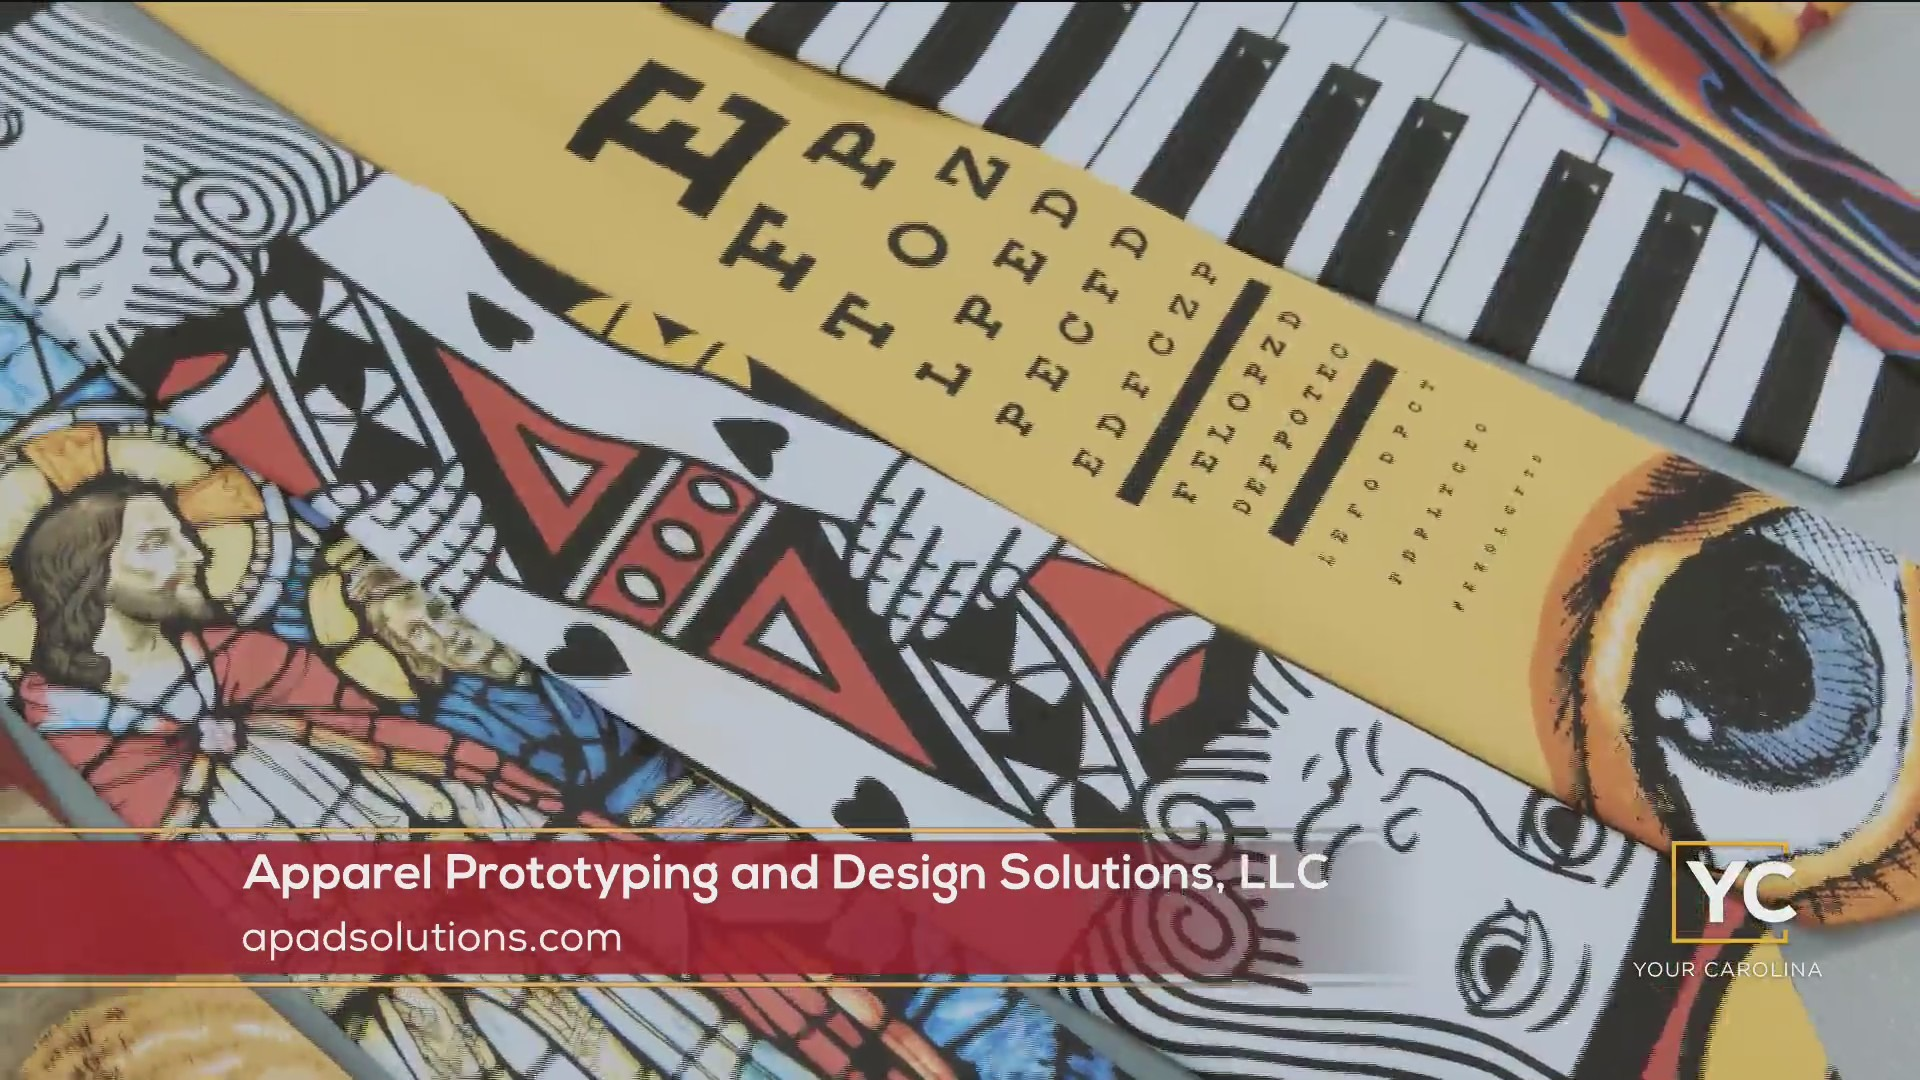 Apparel Prototyping and Design Solutions turns ideas into products